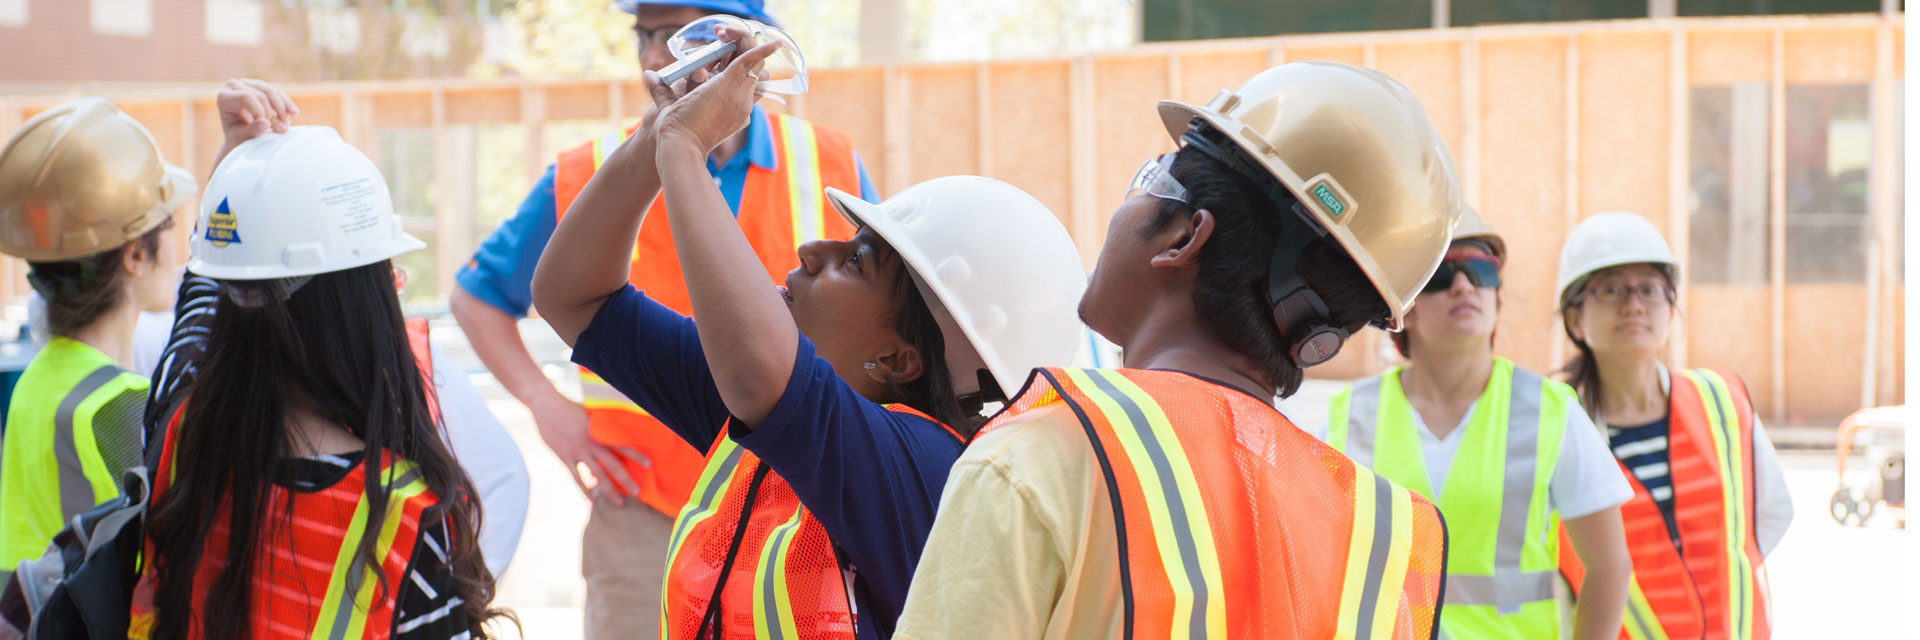 Male and female students observing images through device at construction site.